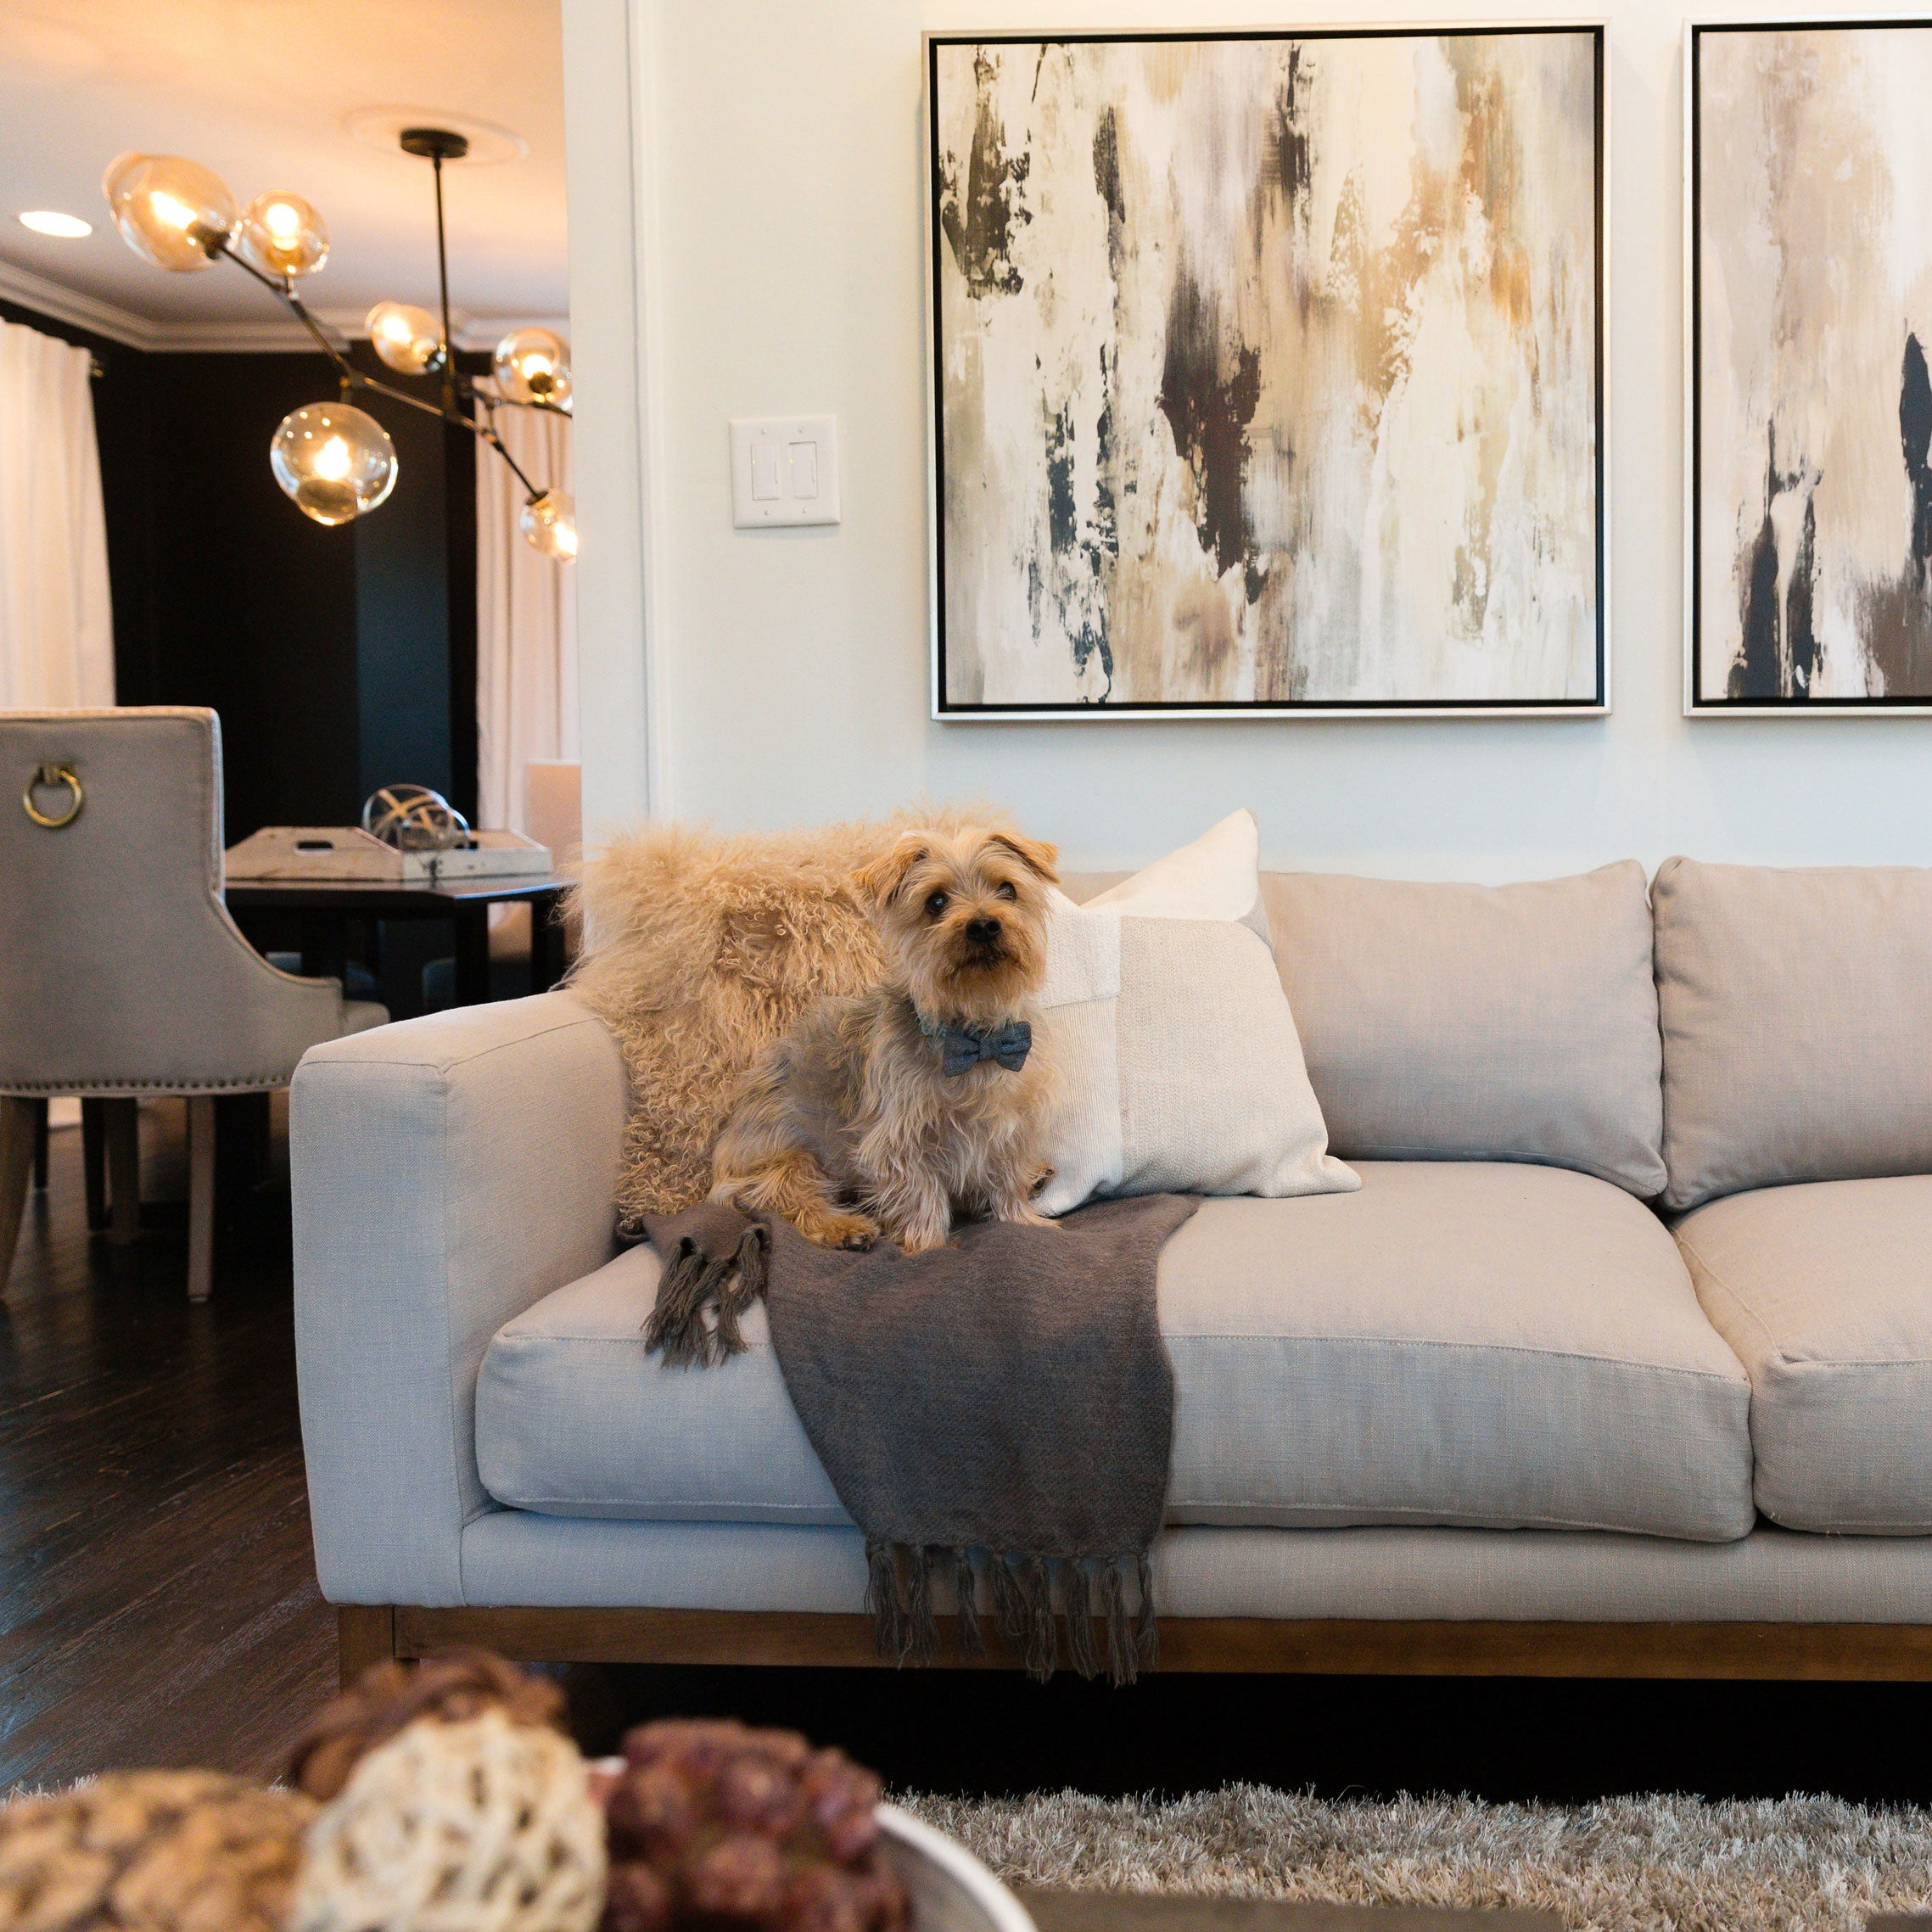 Every aspect of this beautiful home reflects its owner's unique sense of style and Delilah's sweet pup Samson is no exception in his bow tie!